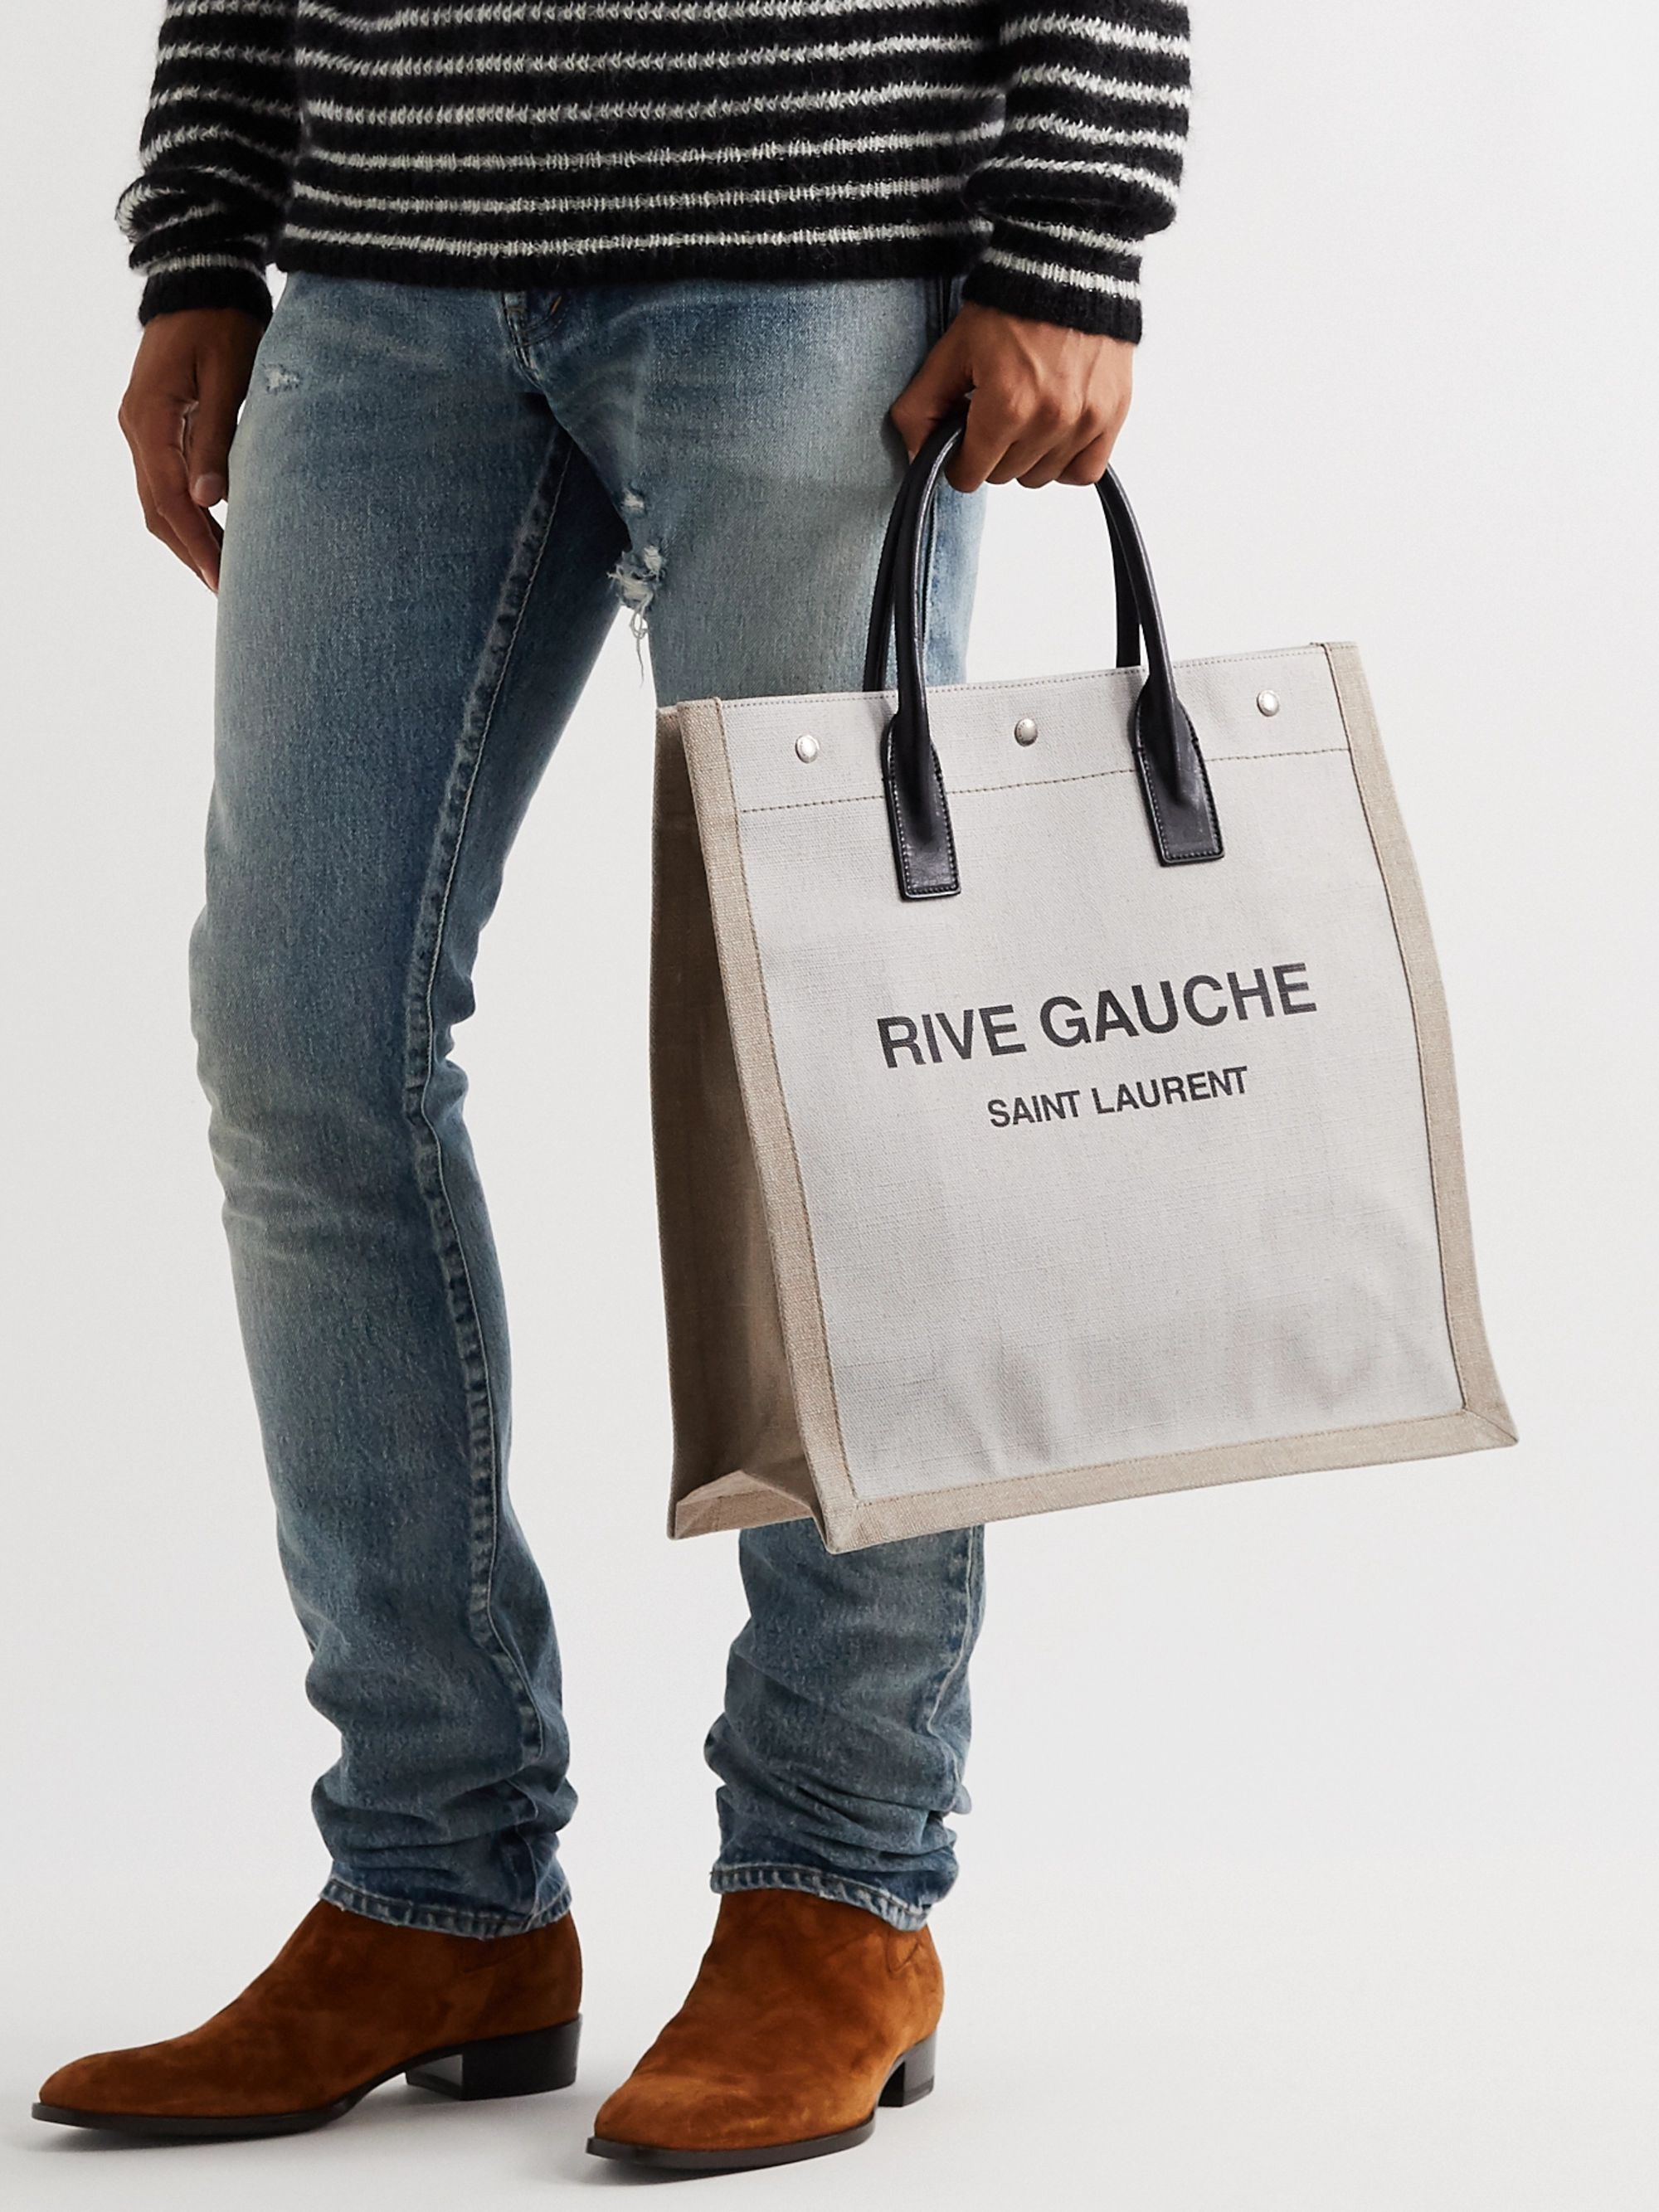 SAINT LAURENT Noe Leather-Trimmed Logo-Print Canvas Tote Bag